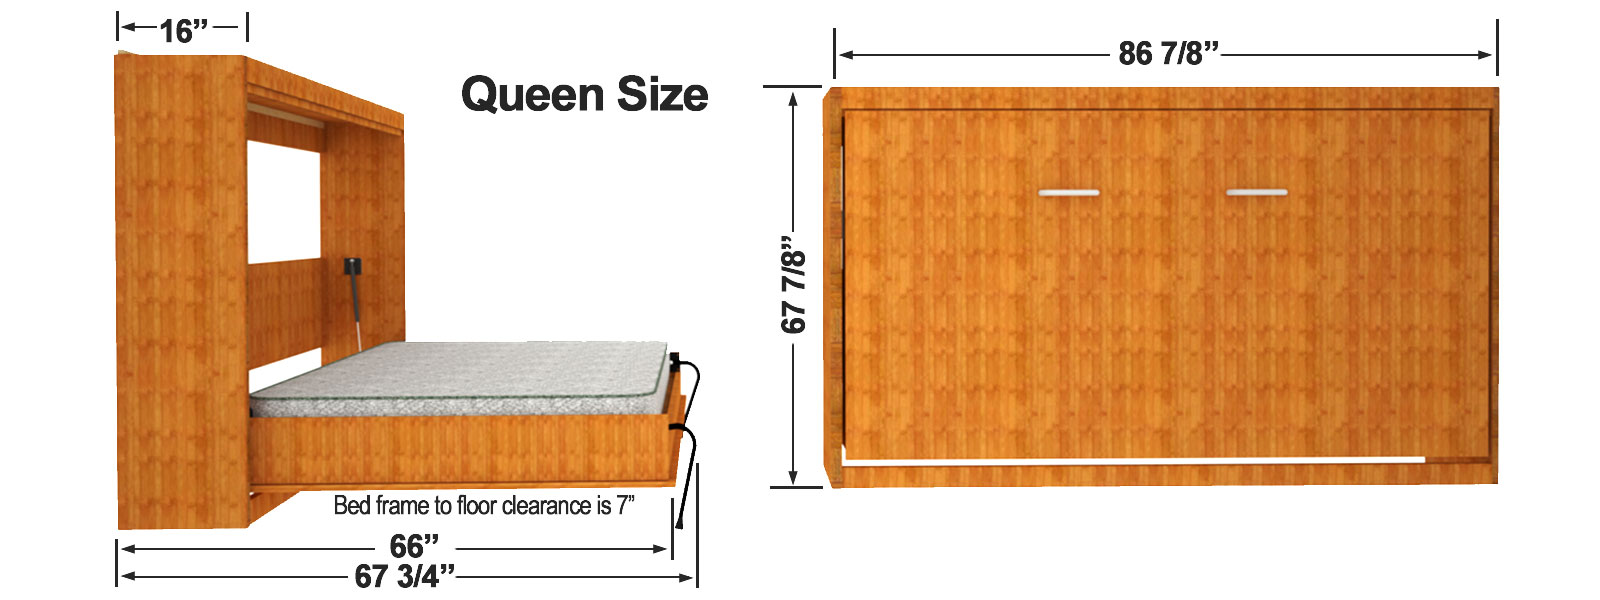 Queen Size Horizontal Wall Bed Cabinet Dimensions